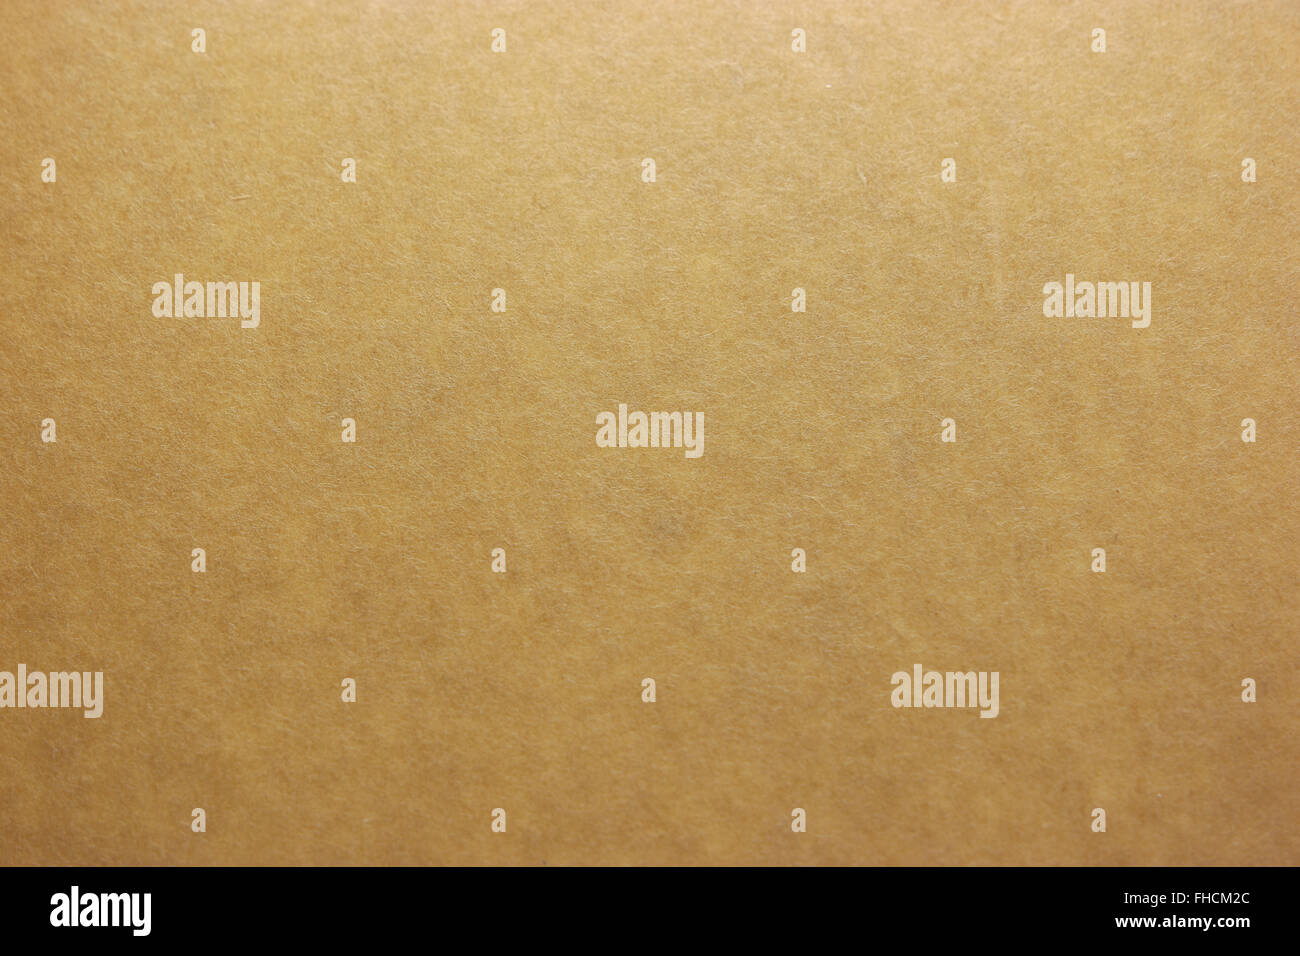 brown paper sheet - Paper texture - Stock Image